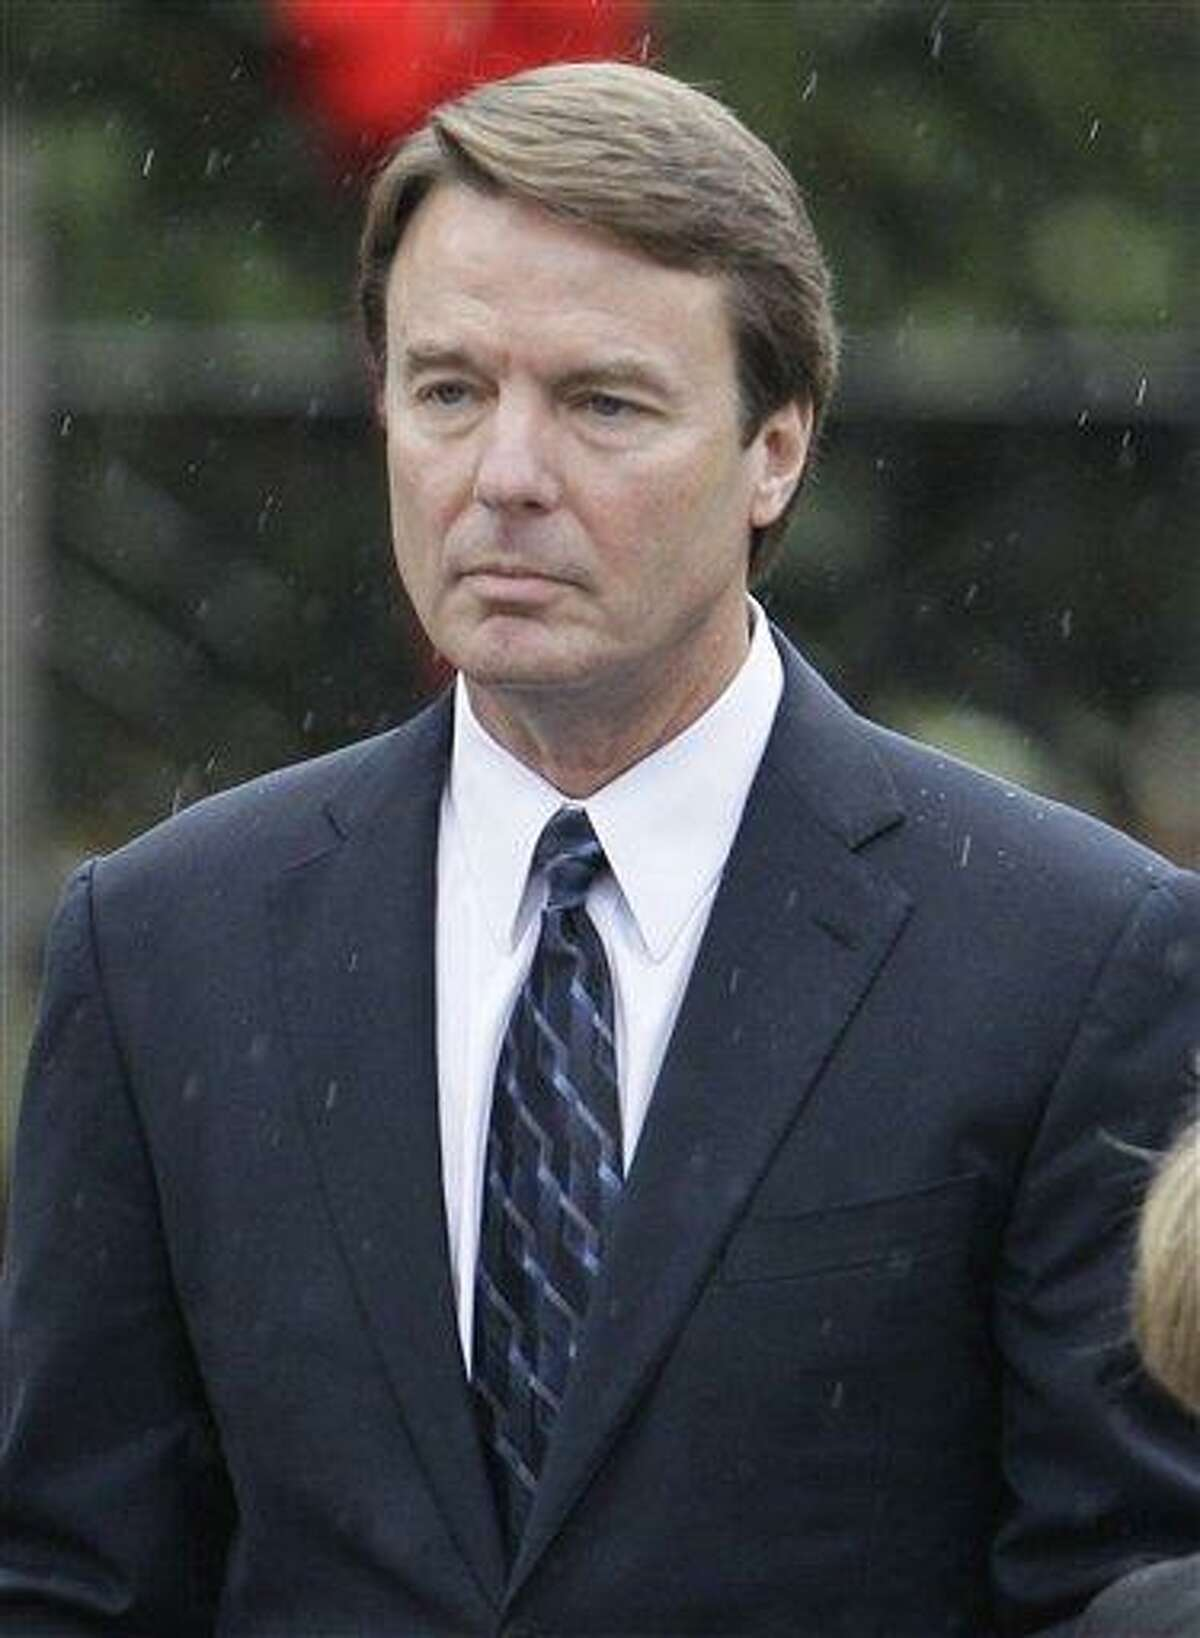 FILE - In this Dec. 11, 2010 file photo, former Democratic presidential candidate John Edwards is seen in Raleigh, N.C. Edwards and federal prosecutors are arguing over whether the money used to cover up his extramarital affair was a campaign contribution or just a gift from his old friends. An indictment of the 2004 Democratic vice presidential nominee appears imminent, but people on both sides still hold out hope for a last-minute deal for a guilty plea to a negotiated charge. (AP Photo/Gerry Broome, File)